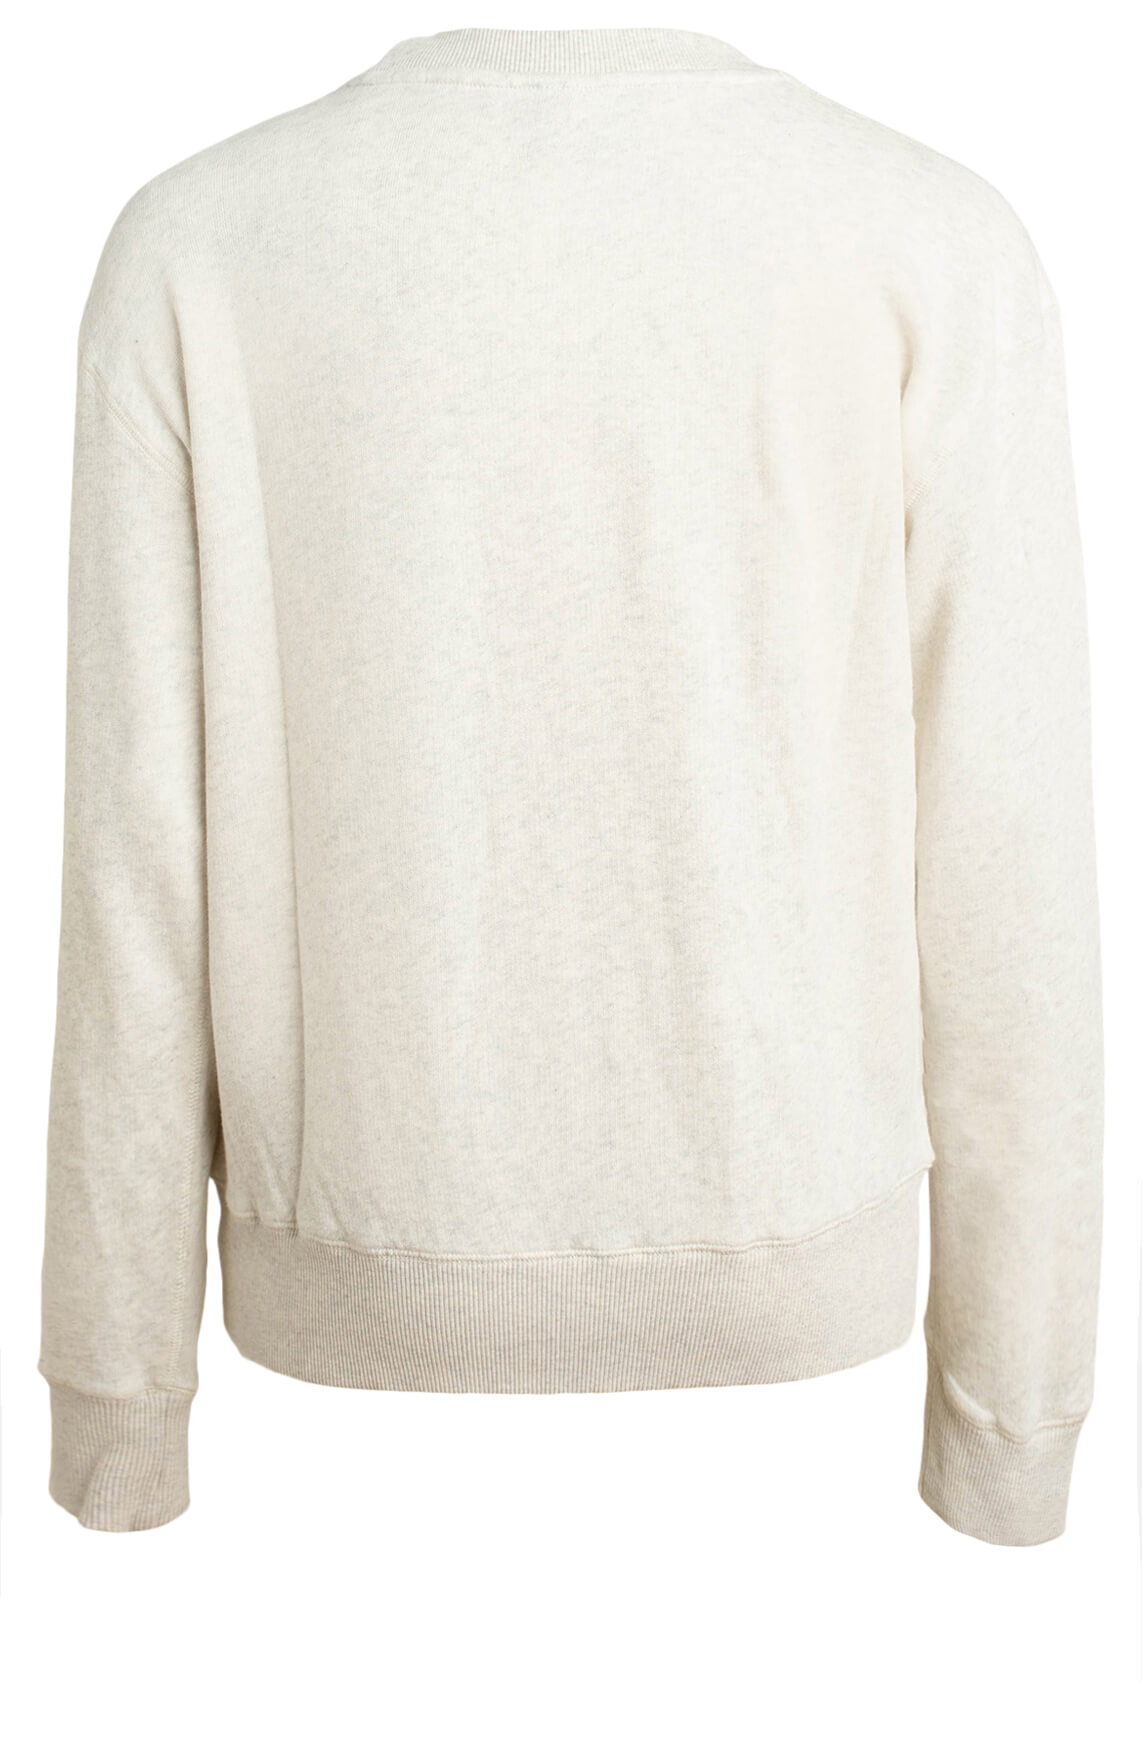 10 Days Dames Gemêleerde sweater Ecru